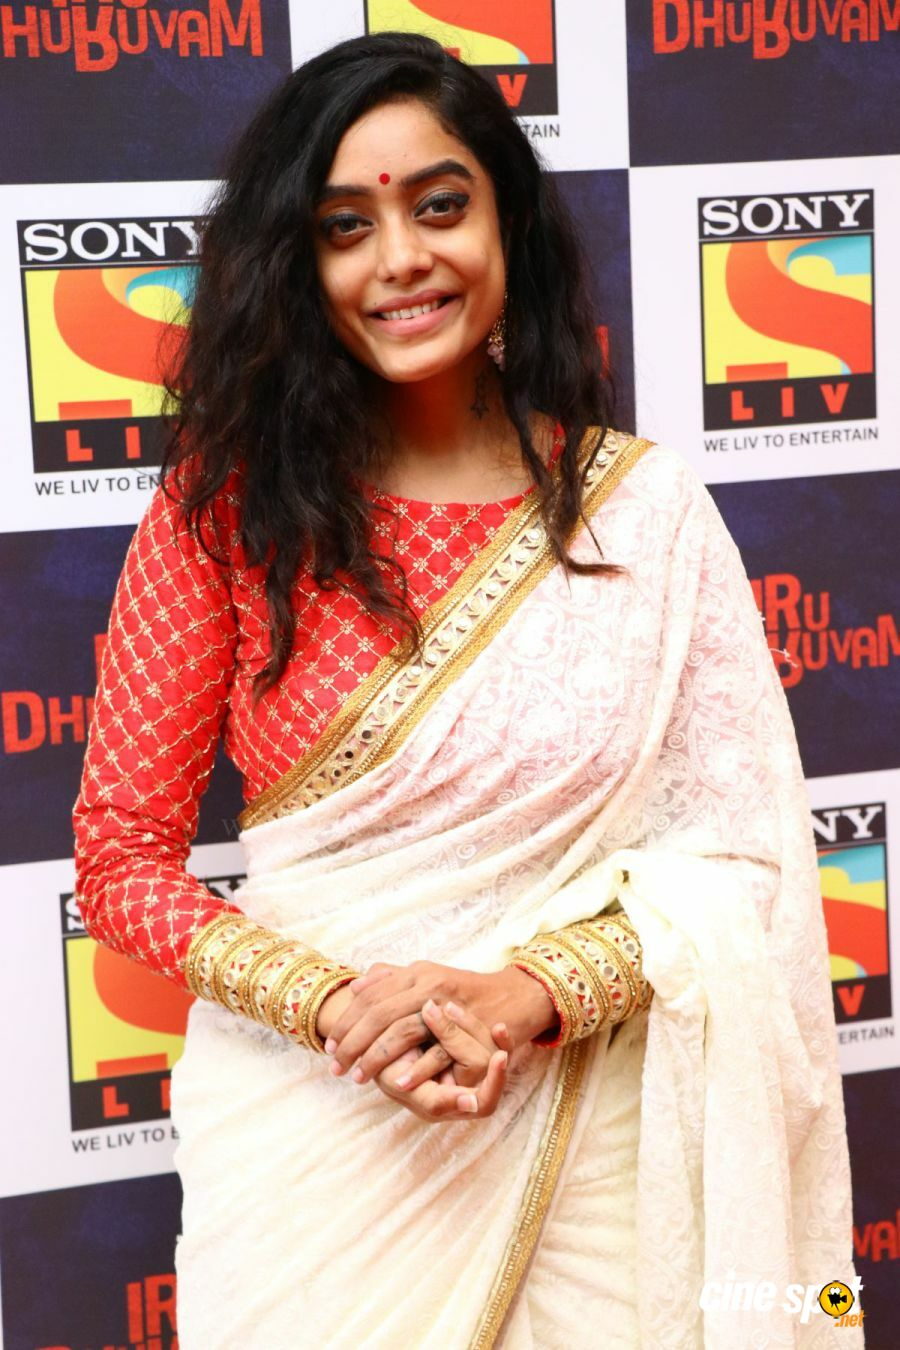 Sony LIV Iru Dhuruvam Web Series Launch (8)